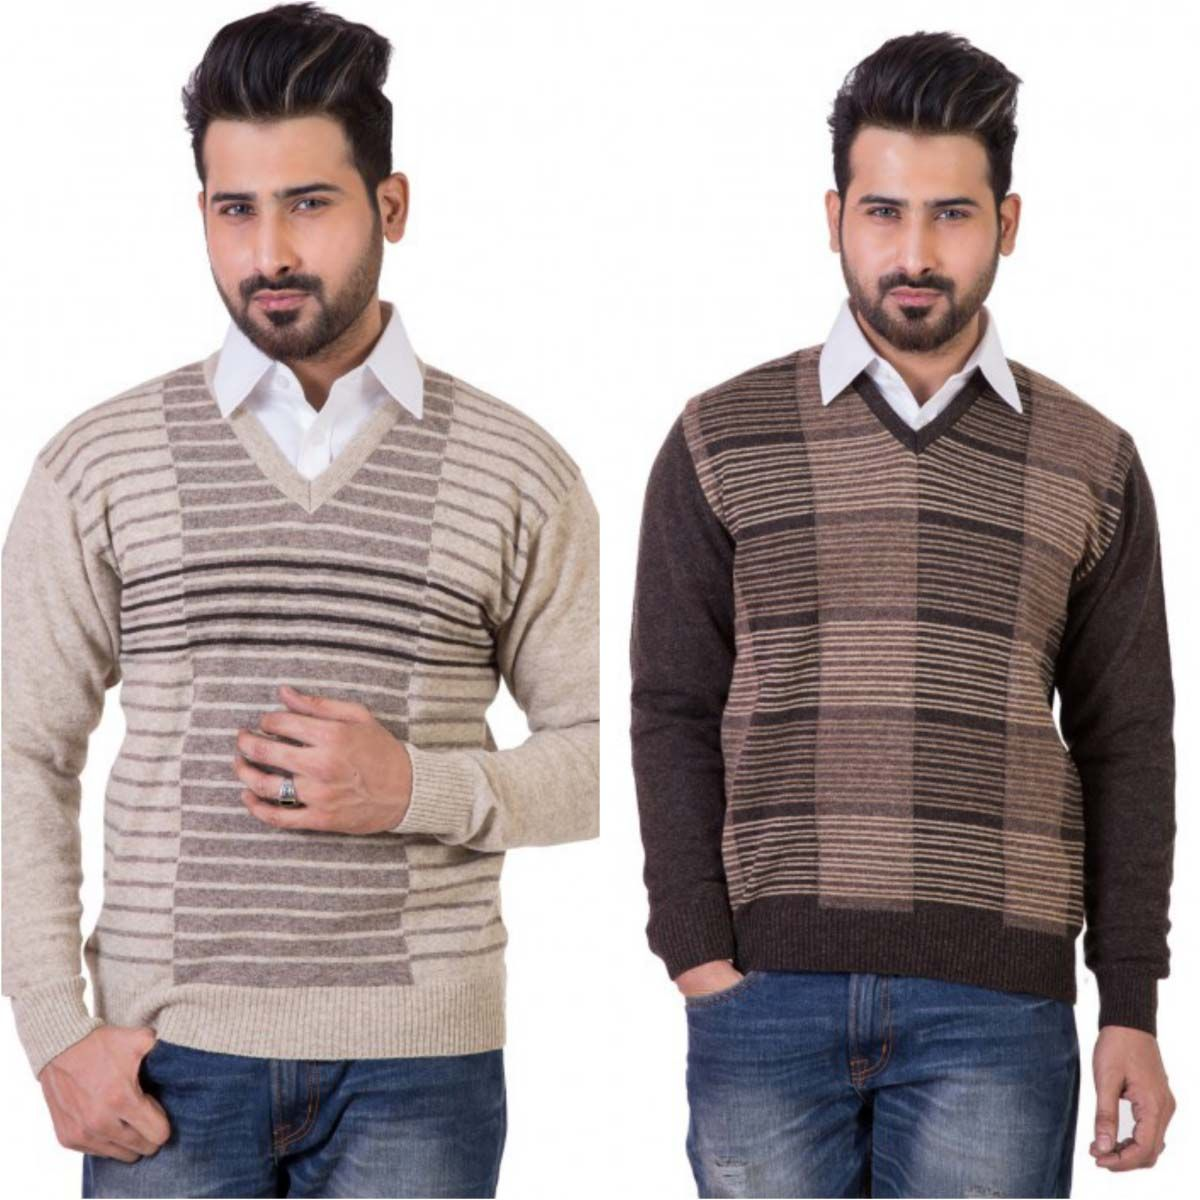 bonanza-winter-sweaters-and-outfits-2017-2018-for-men-7 | erss ...